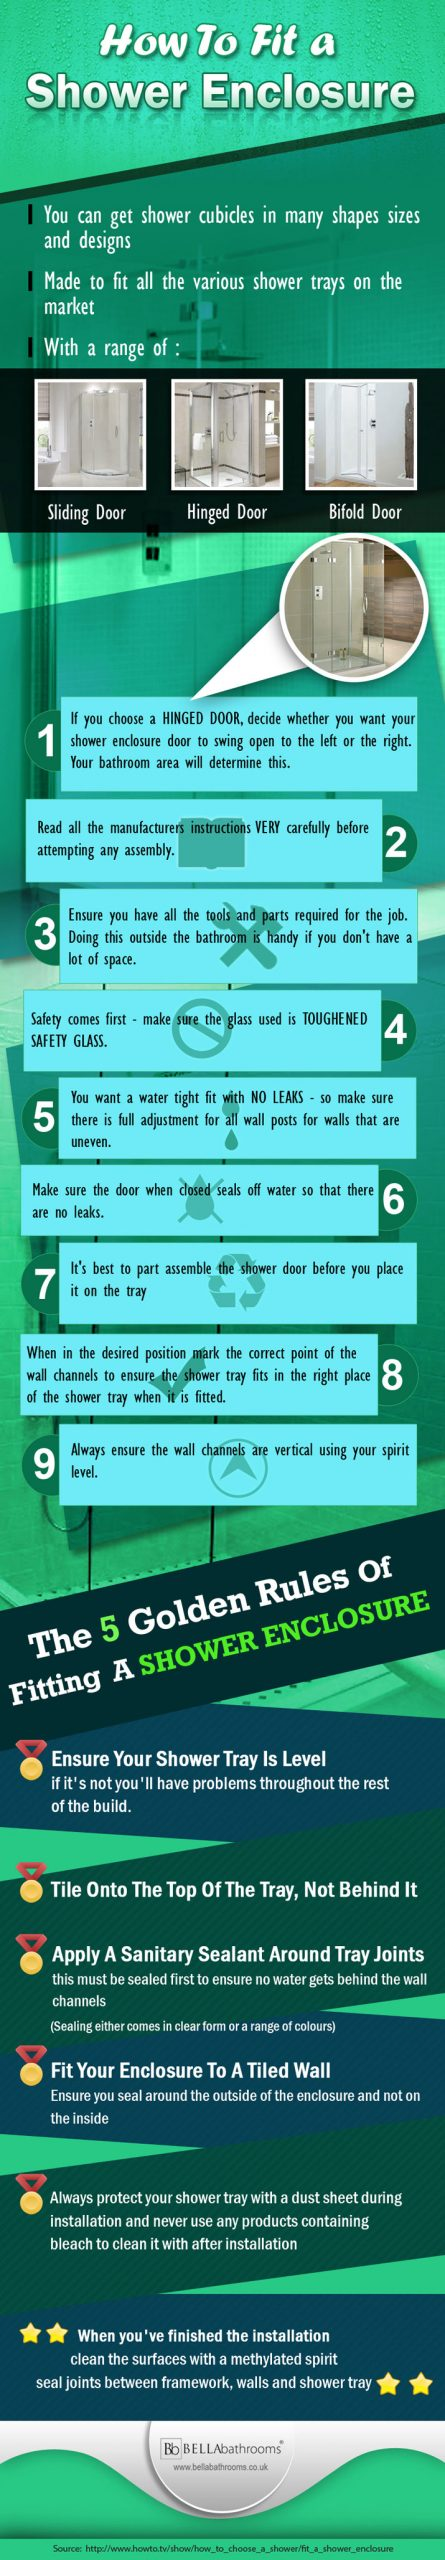 Infographic on how to fit a shower enclosure